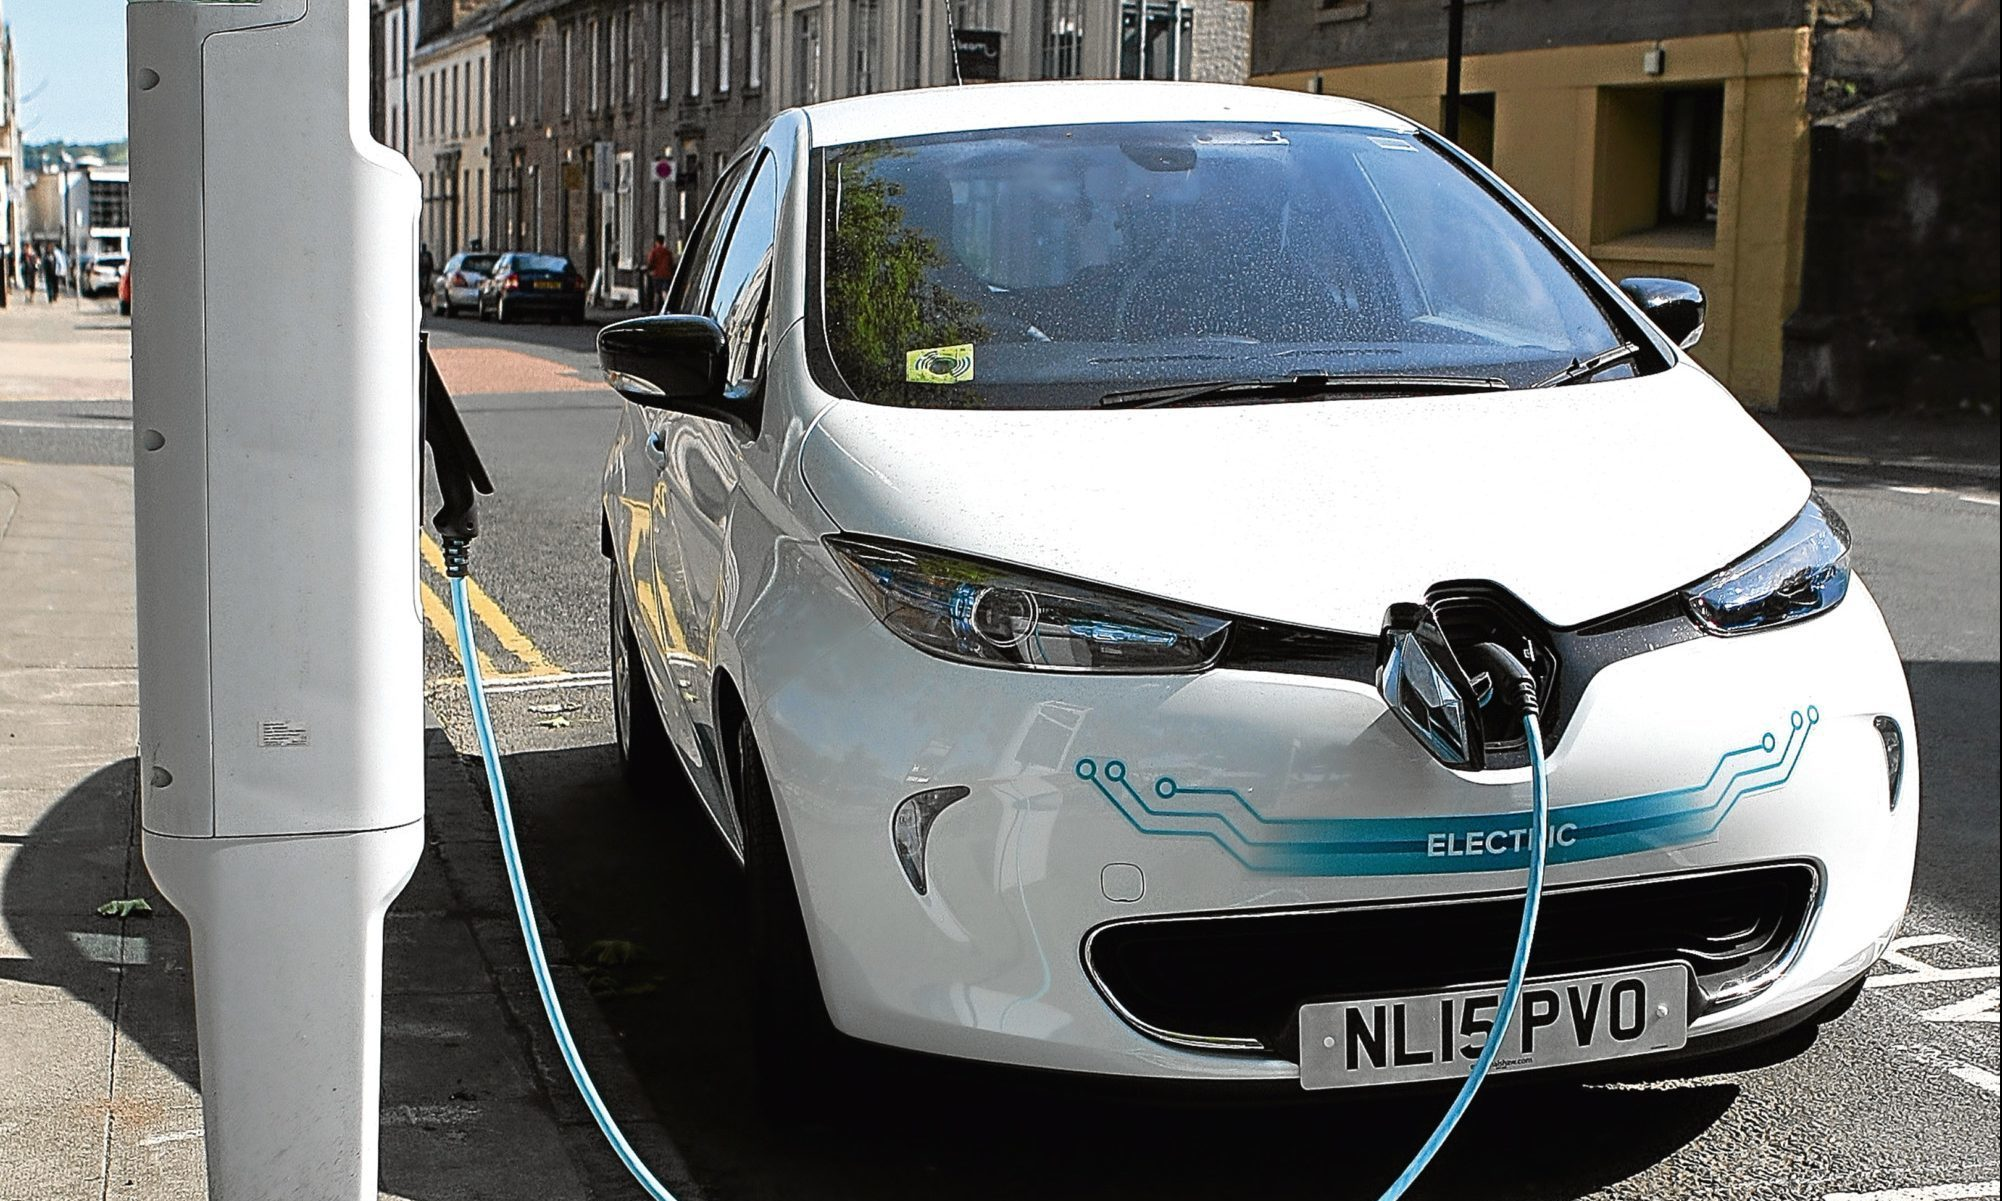 An electric vehicle charging point in Dundee's South Tay Street.